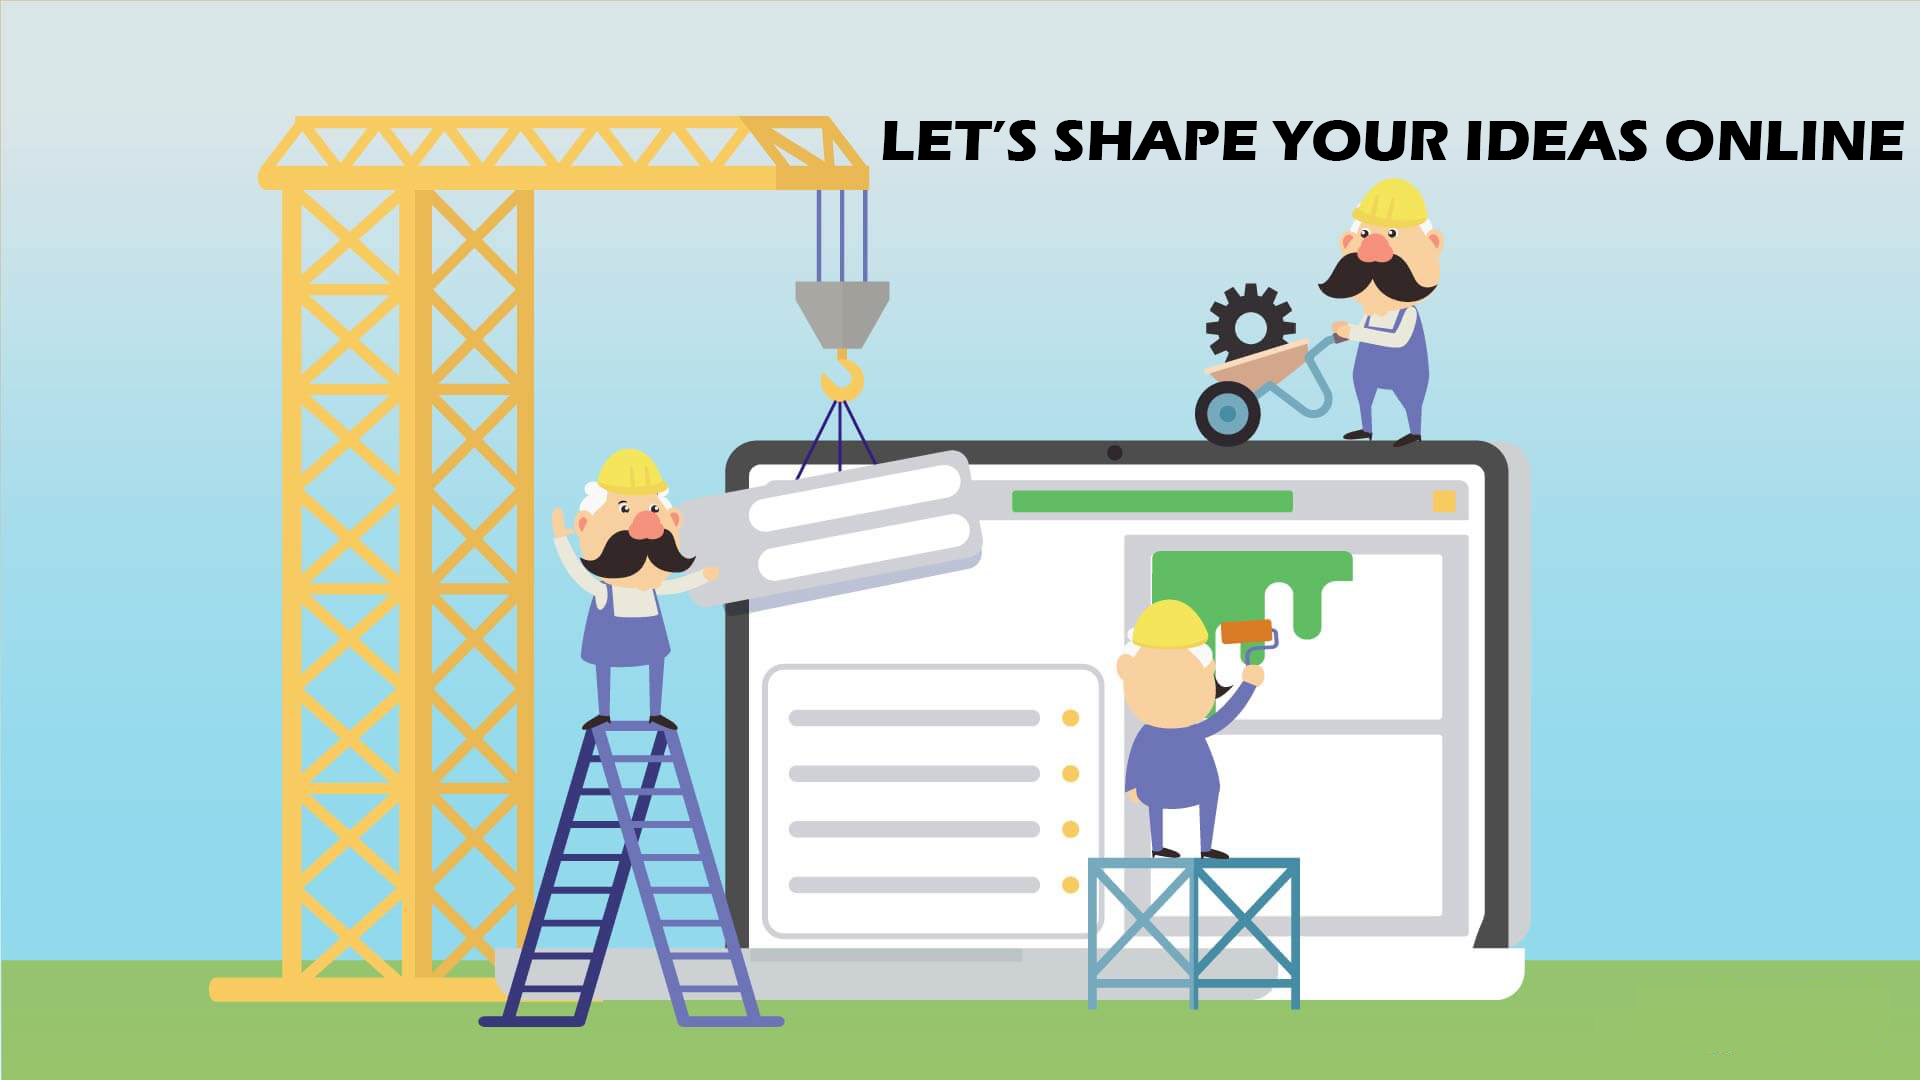 A complete beginners guide to build your own website with the help of website builder tool